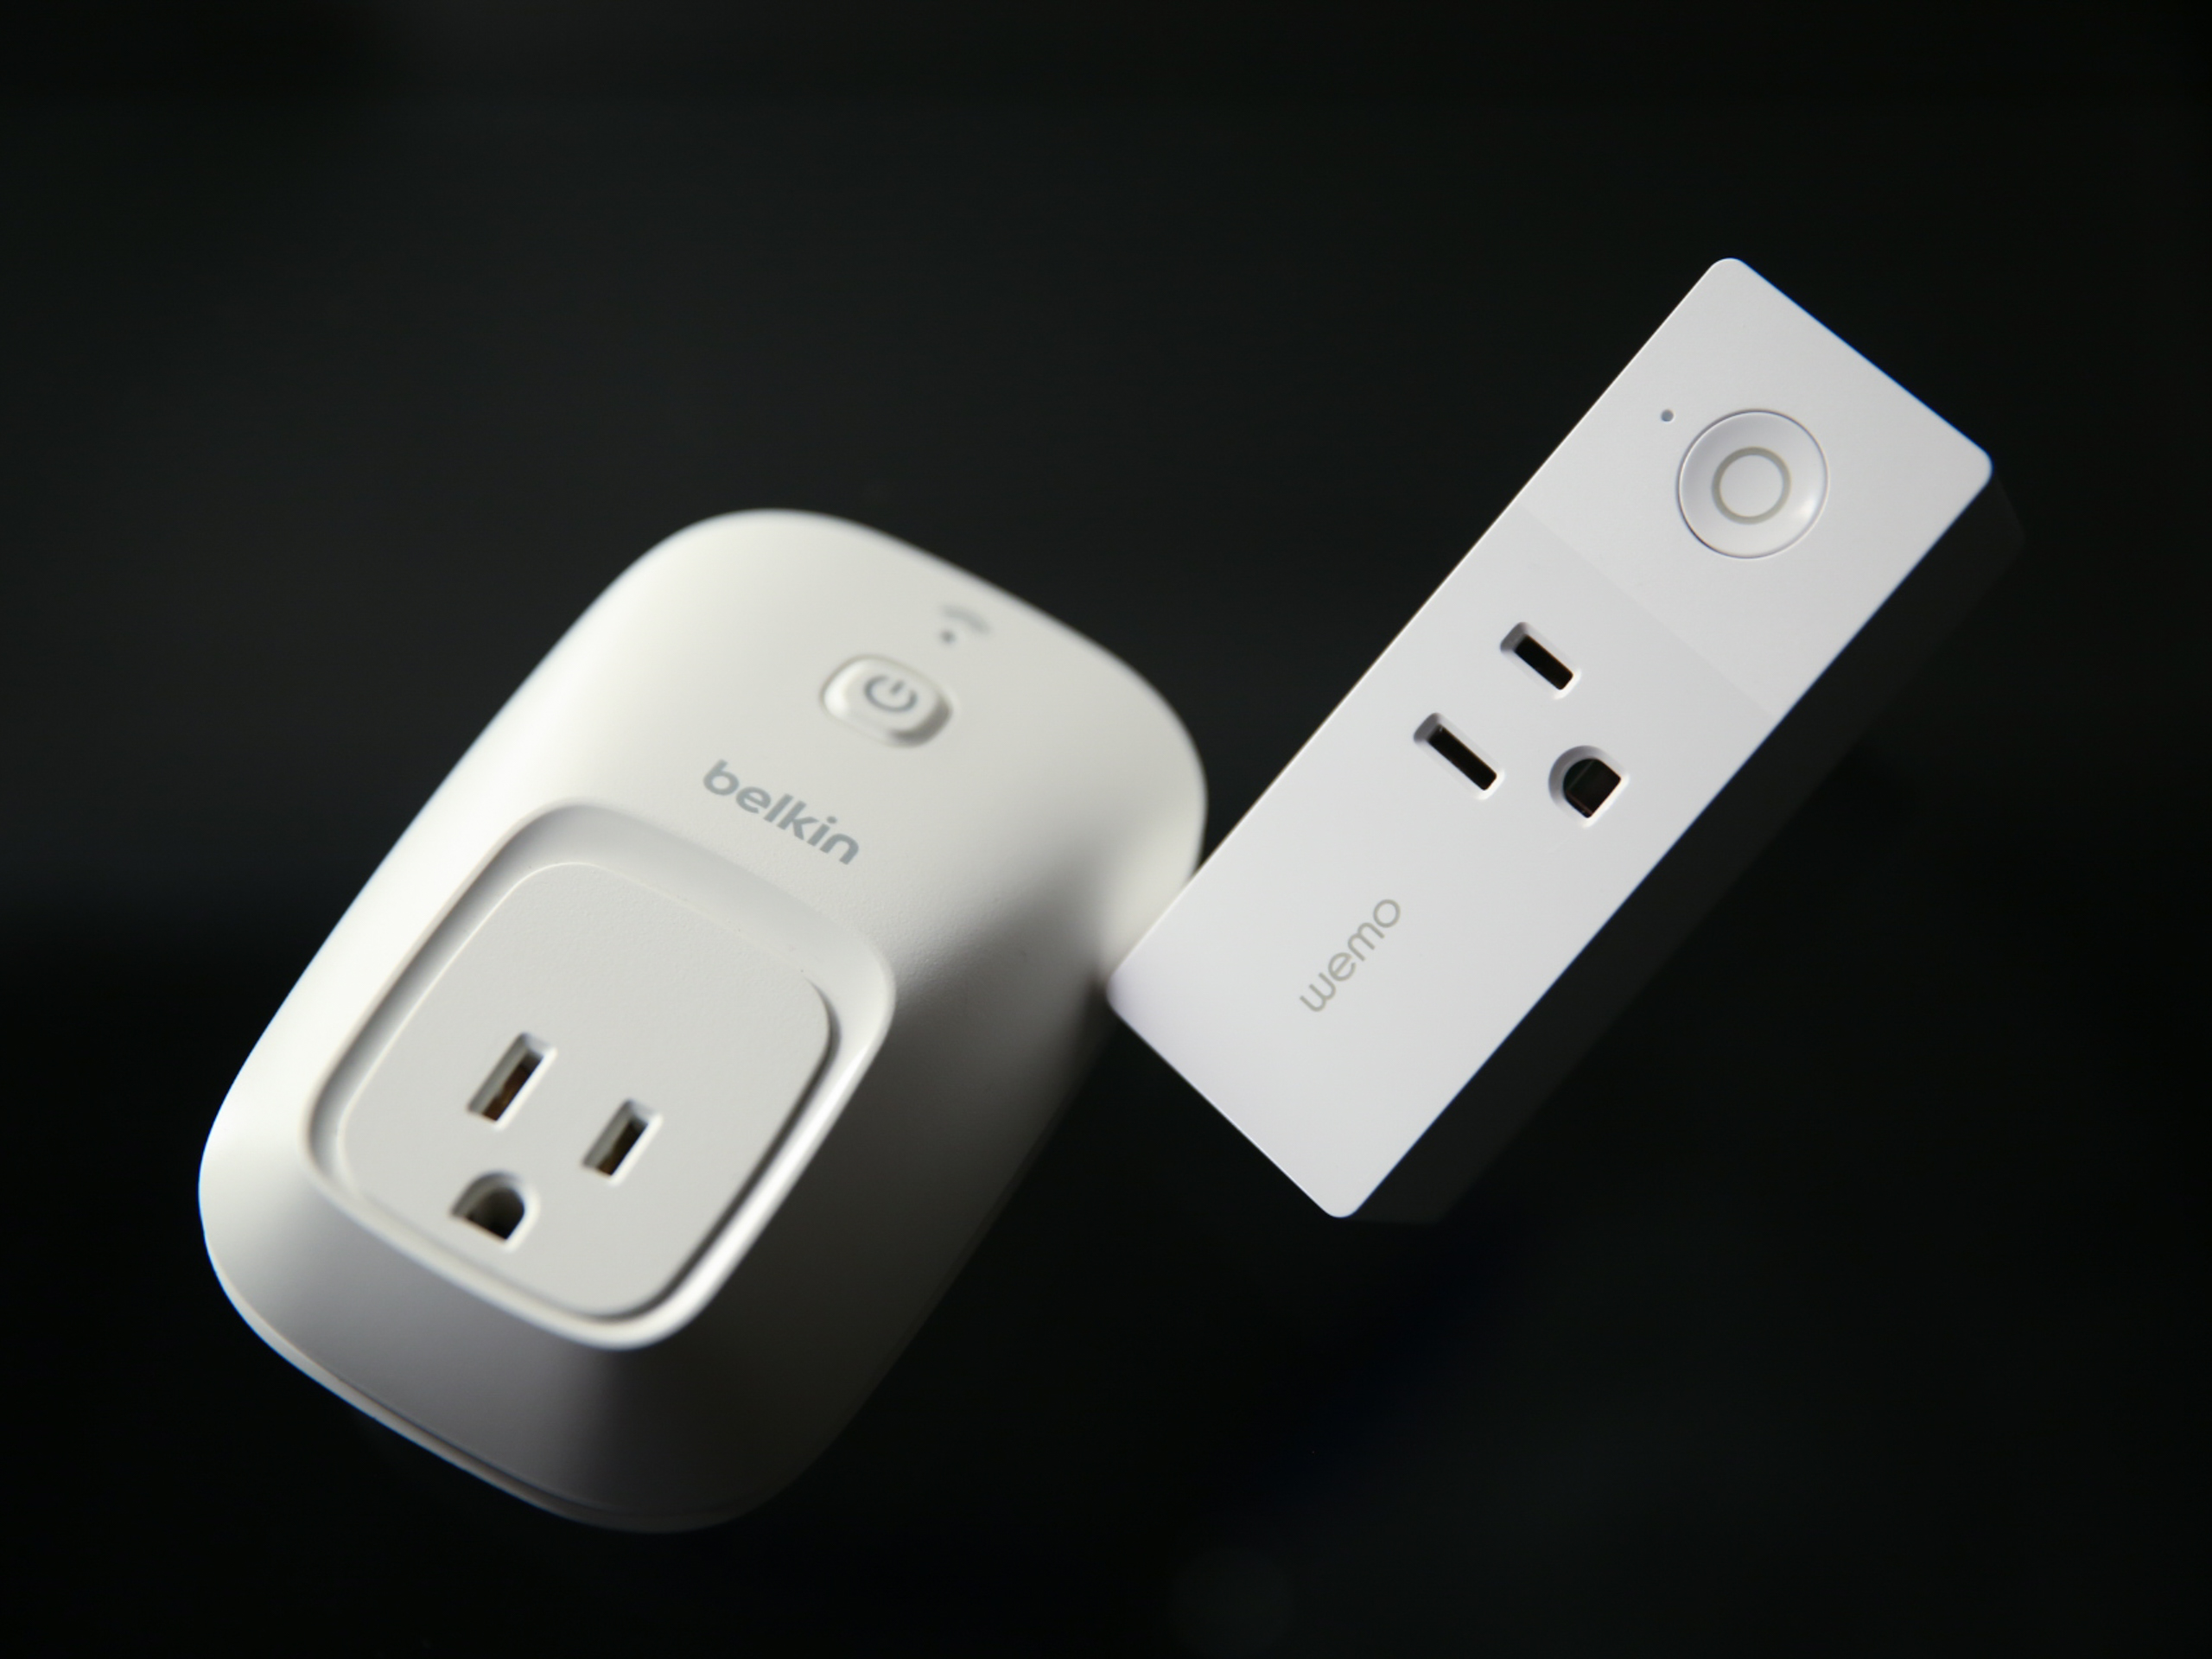 belking-wemo-switch-mini-product-photos-11.jpg